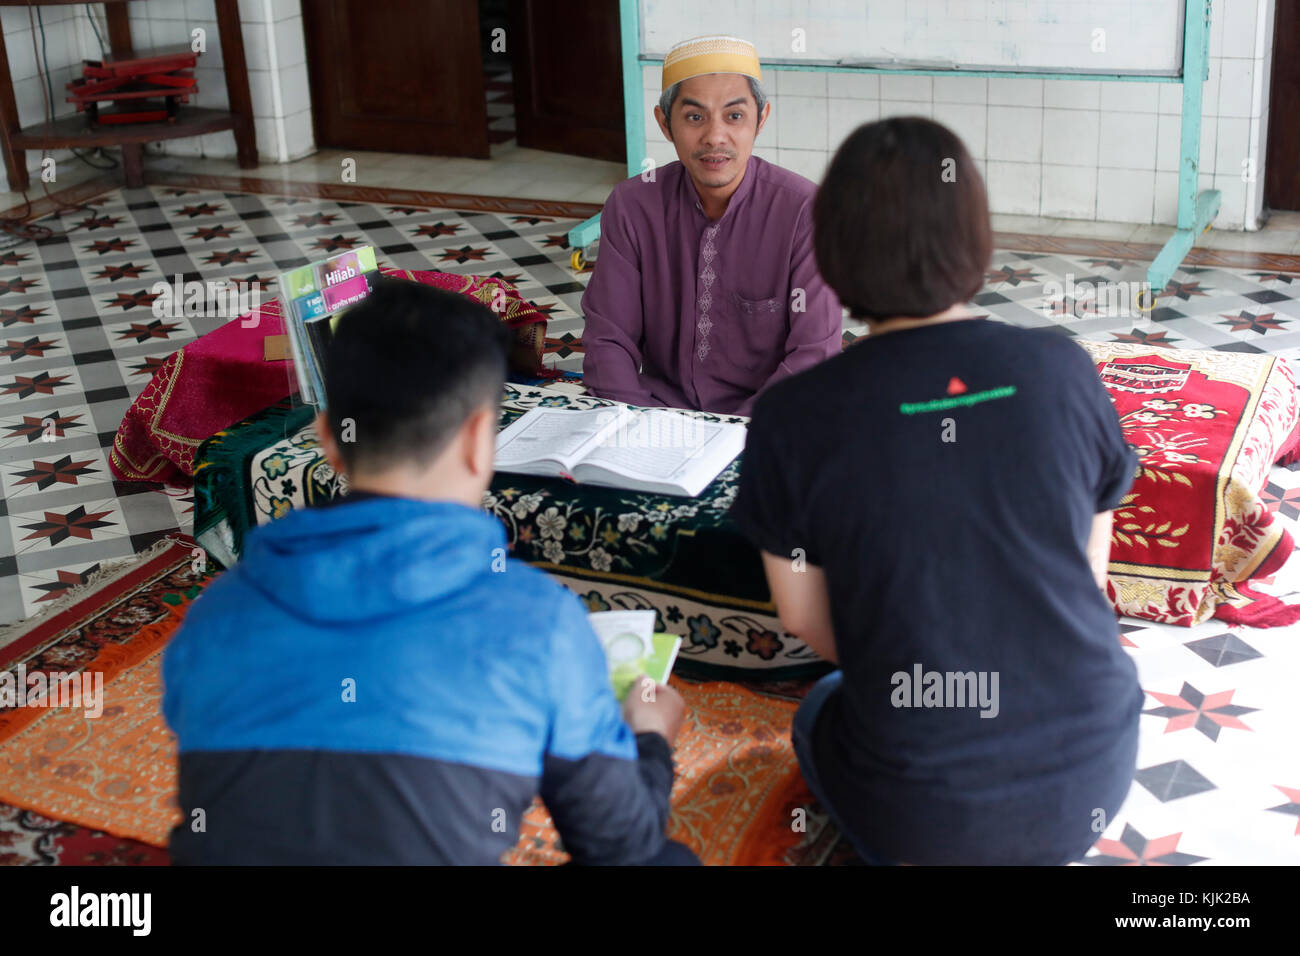 Saigon Central Mosque. Muslim man giving brochures to a young couple.  Ho Chi Minh City.  Vietnam. - Stock Image